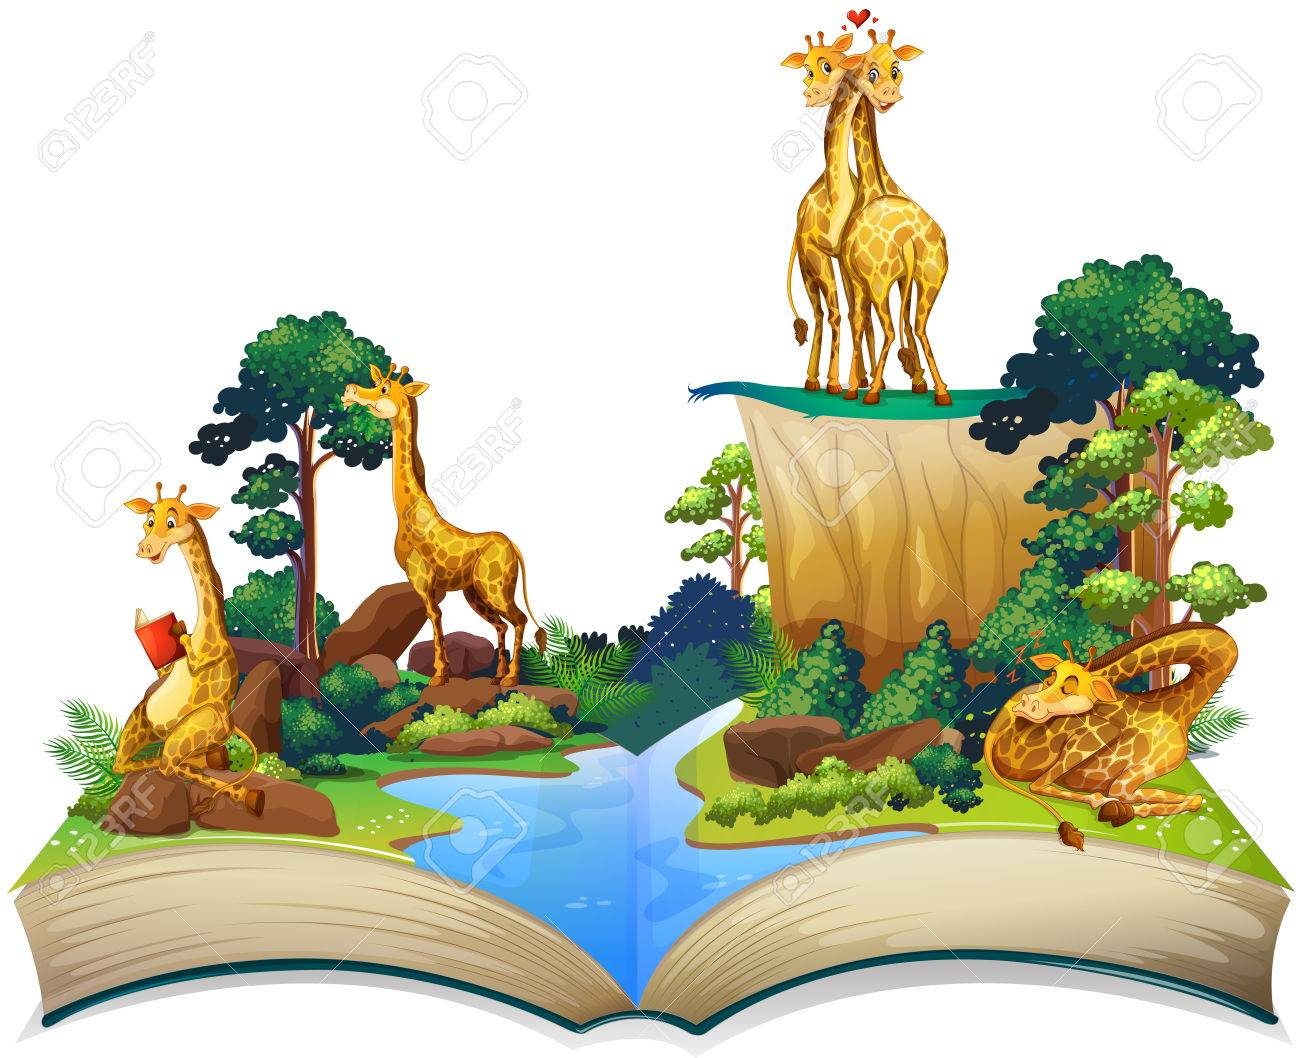 Book of giraffes living by the river illustration - 51244640